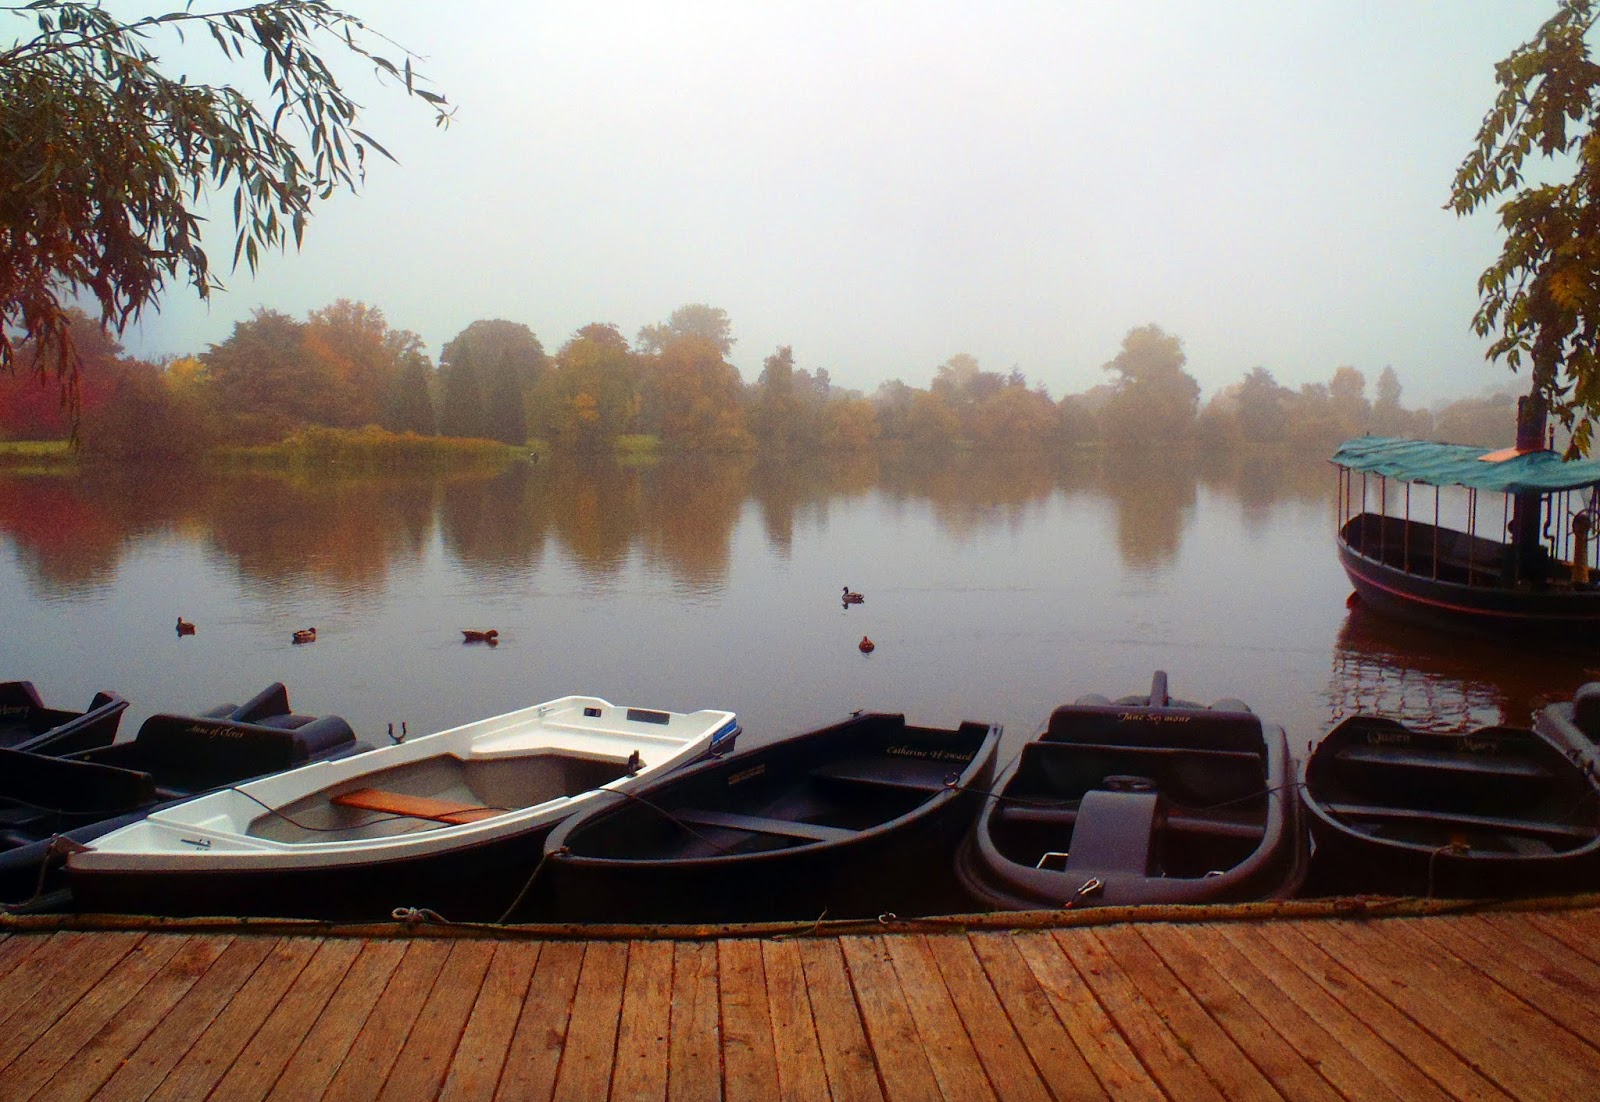 Mist over lake at Hever Castle